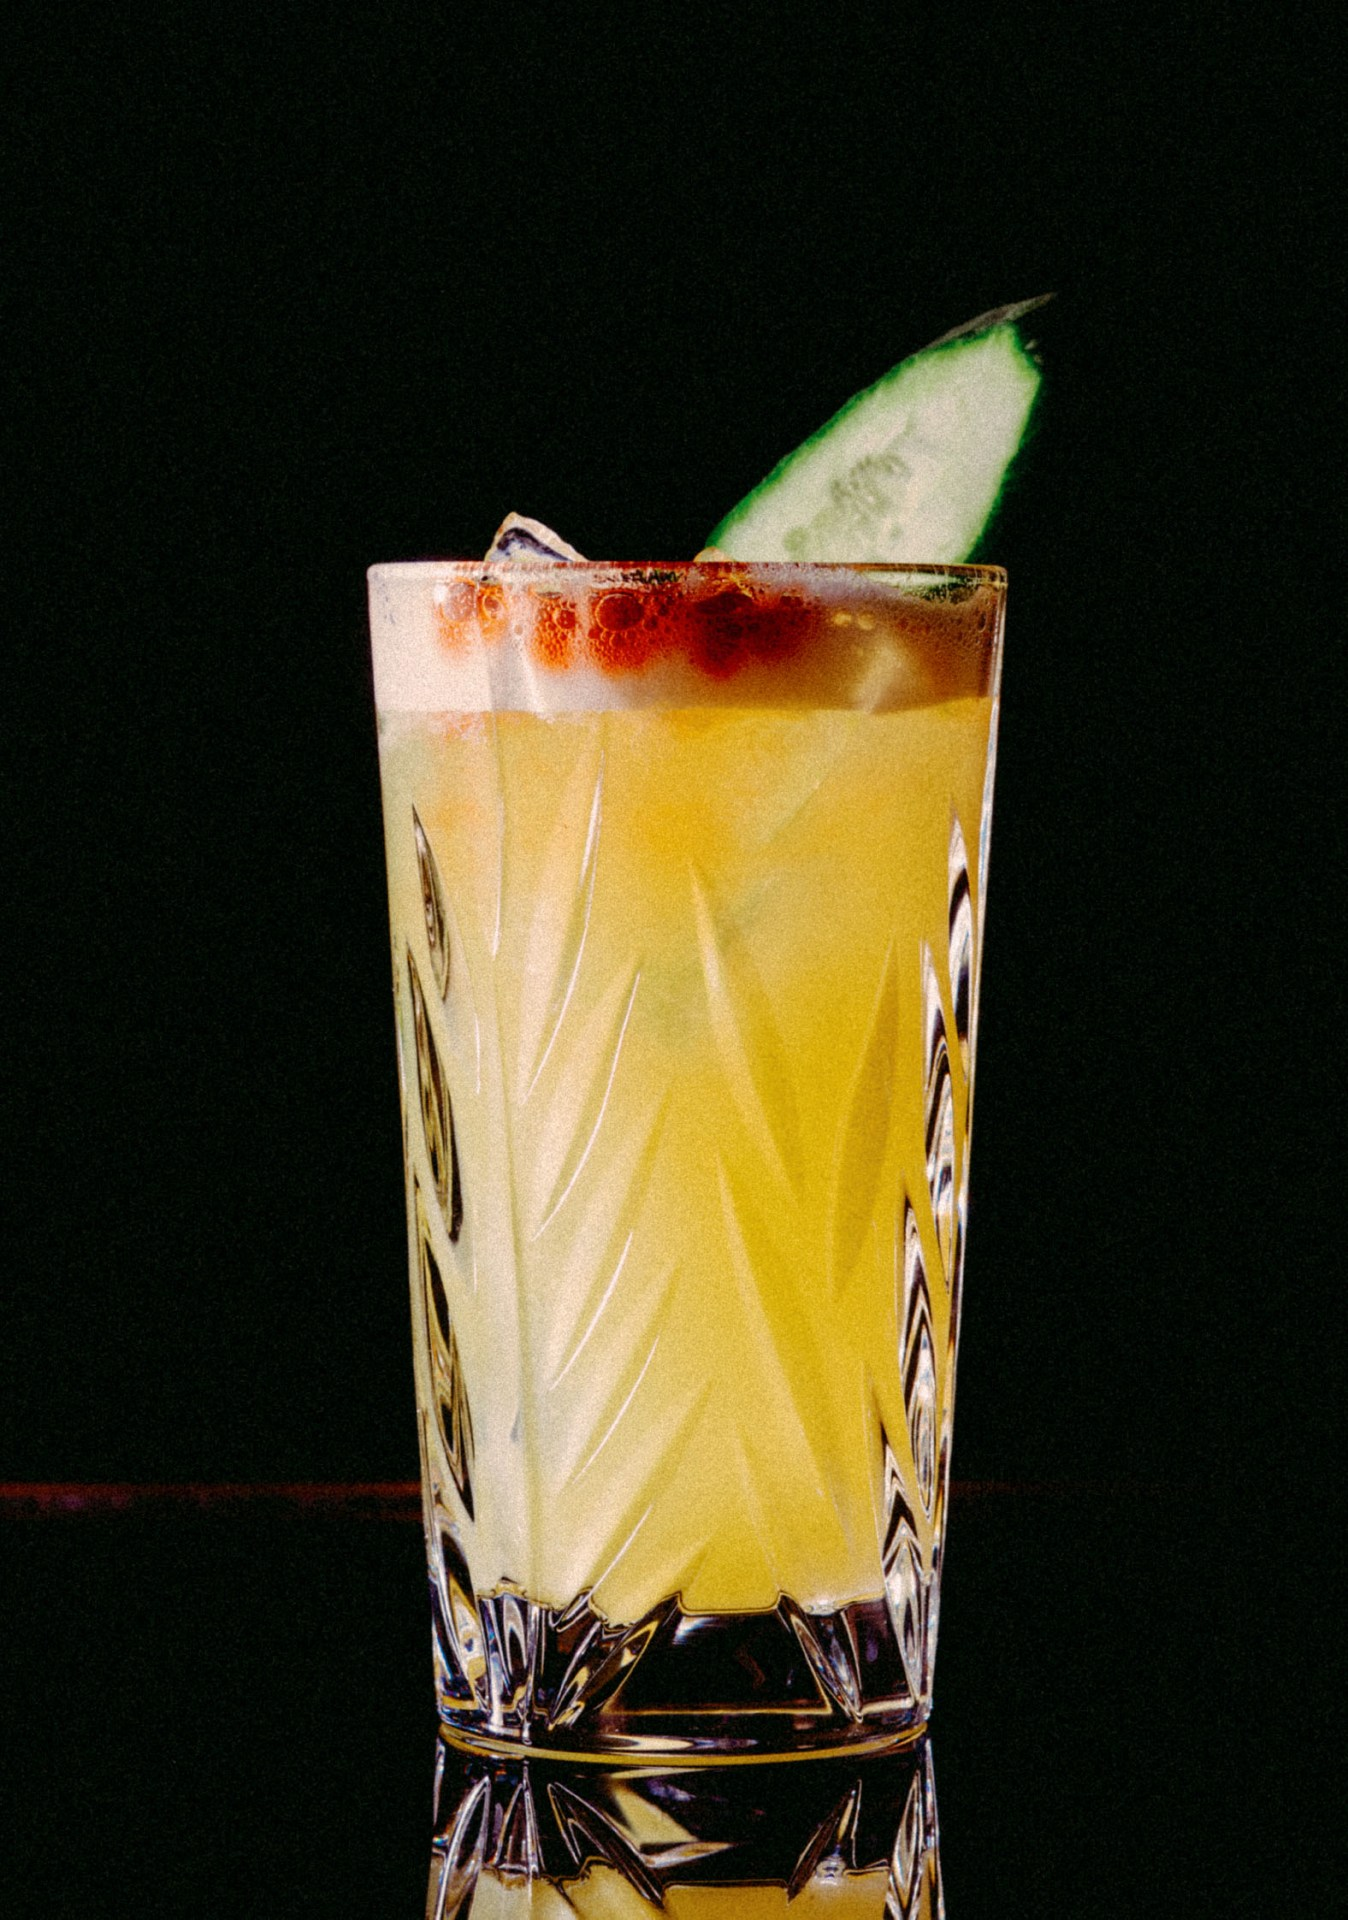 Recipe: 4cl Russian Standard Vodka 2cl Lime Juice 1.5cl Orgeat Syrup 8cl Pineapple Juice 2 Dashes Angostura Bitters Cucumber